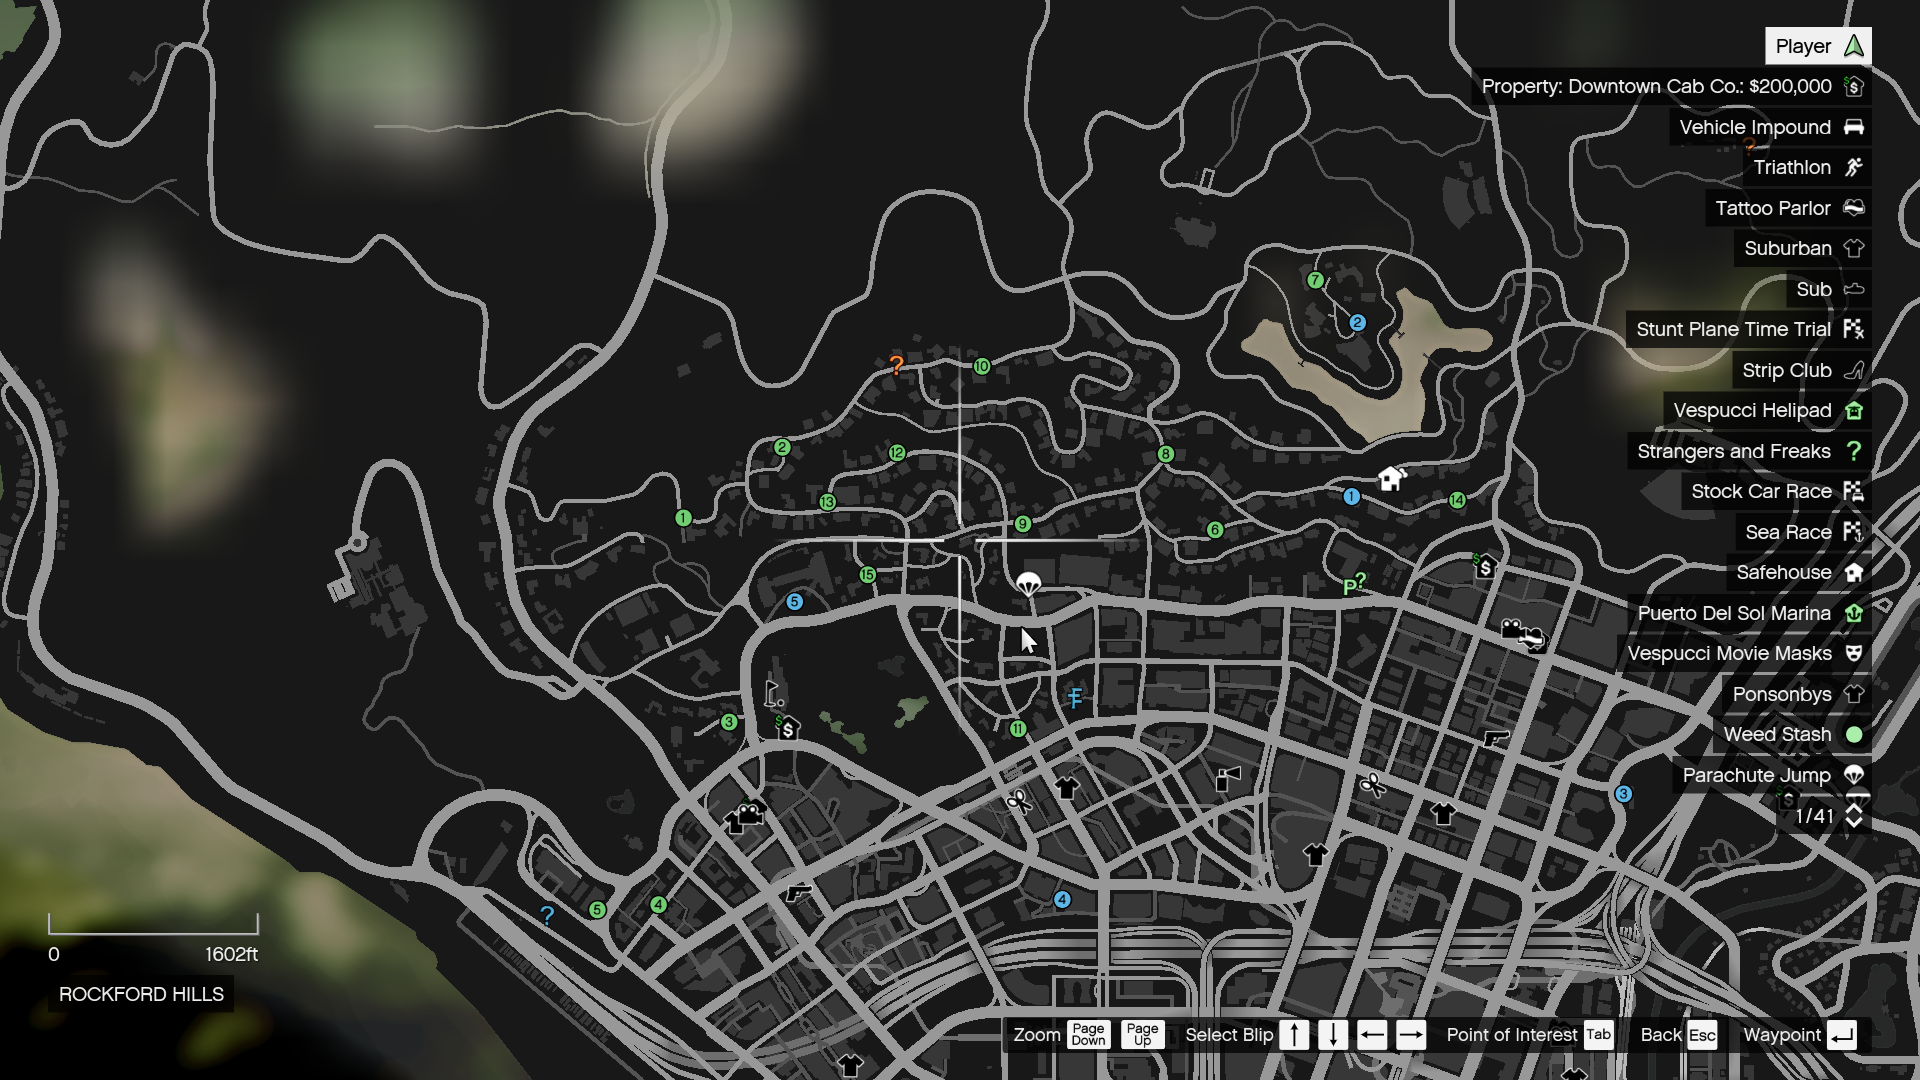 Collectible Collector - GTA5-Mods.com on modern combat map, socom map, grand theft auto map, burlington map, gta2 map, la noire map, hilton guam map, gta3 map, halo map, need for speed map, the sims map, skyrim map, vice city map, earn to die 2 map, toronto map, igi 3 map, game map, gtav map, gat map, carcer city map,